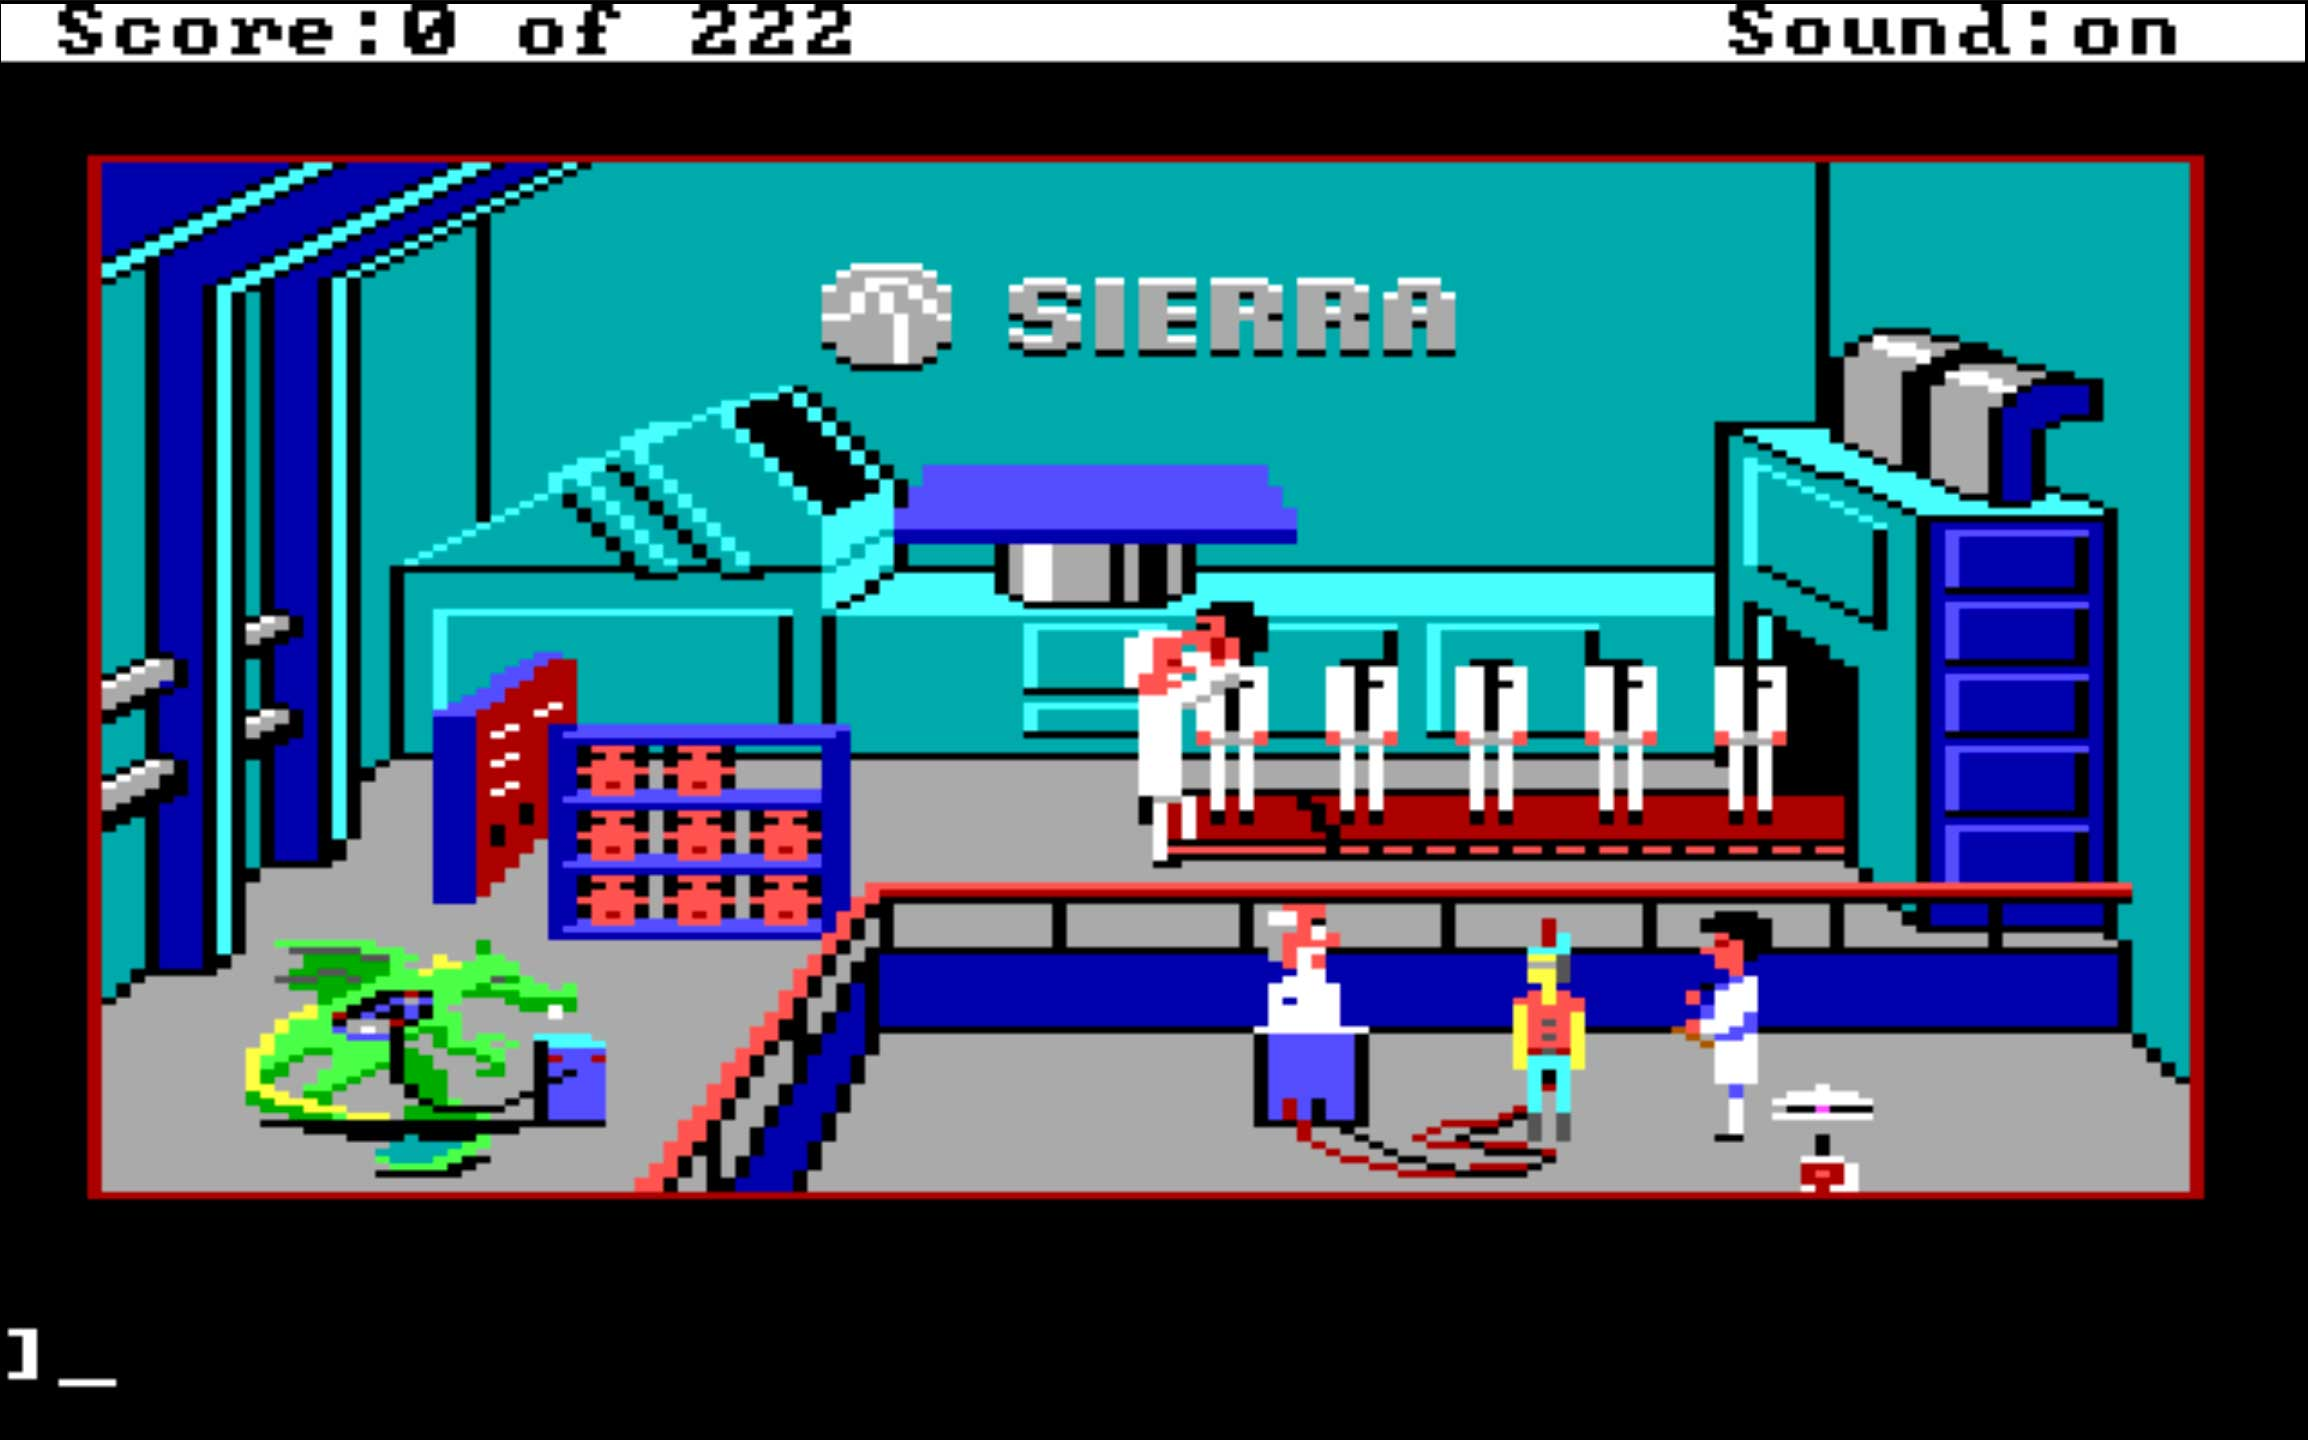 Leisure Suit Larry 1 - Land of the Lounge Lizards (1987)                                                               Tame by today's standards, this 8-bit, adult-oriented title was the Grand Theft Auto of its time, following the exploits of Larry Laffer as he strolls the city of Lost Wages, looking for love.